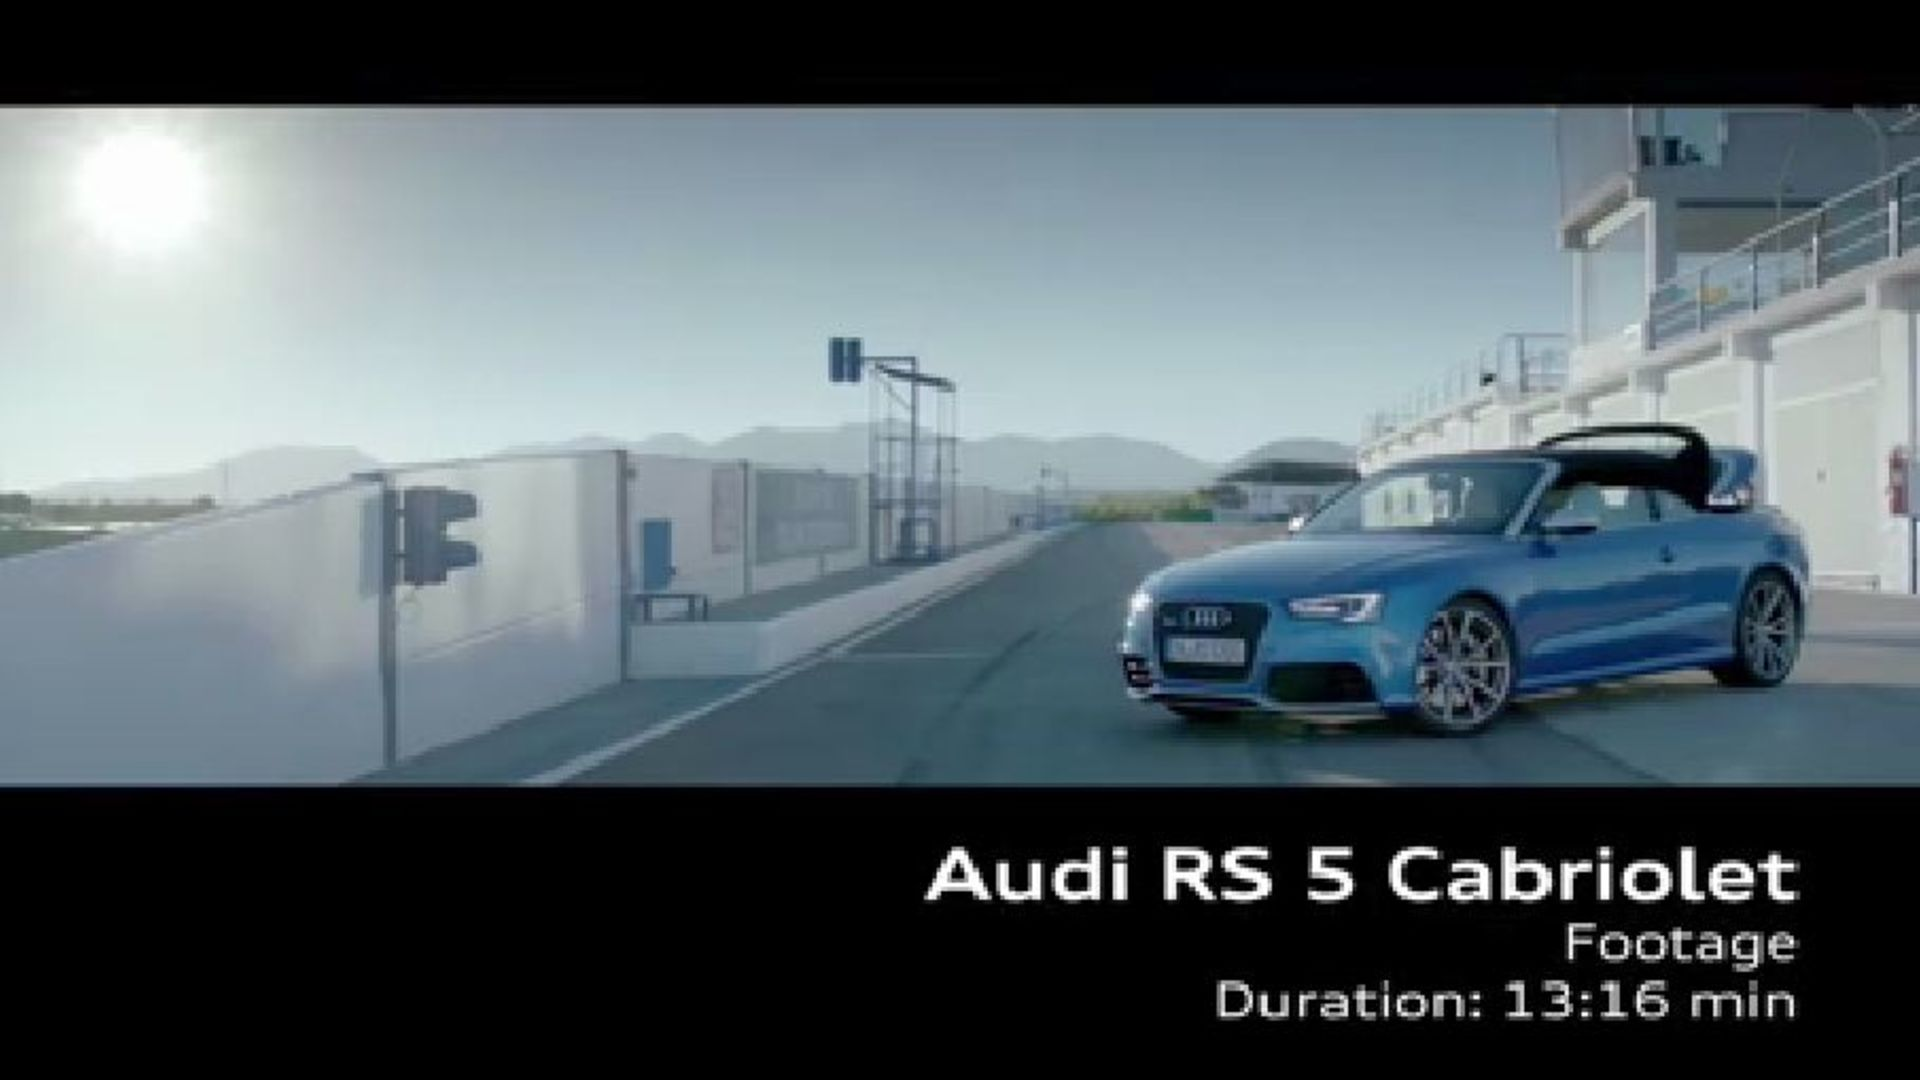 The Audi RS 5 Cabriolet on racetrack - Footage